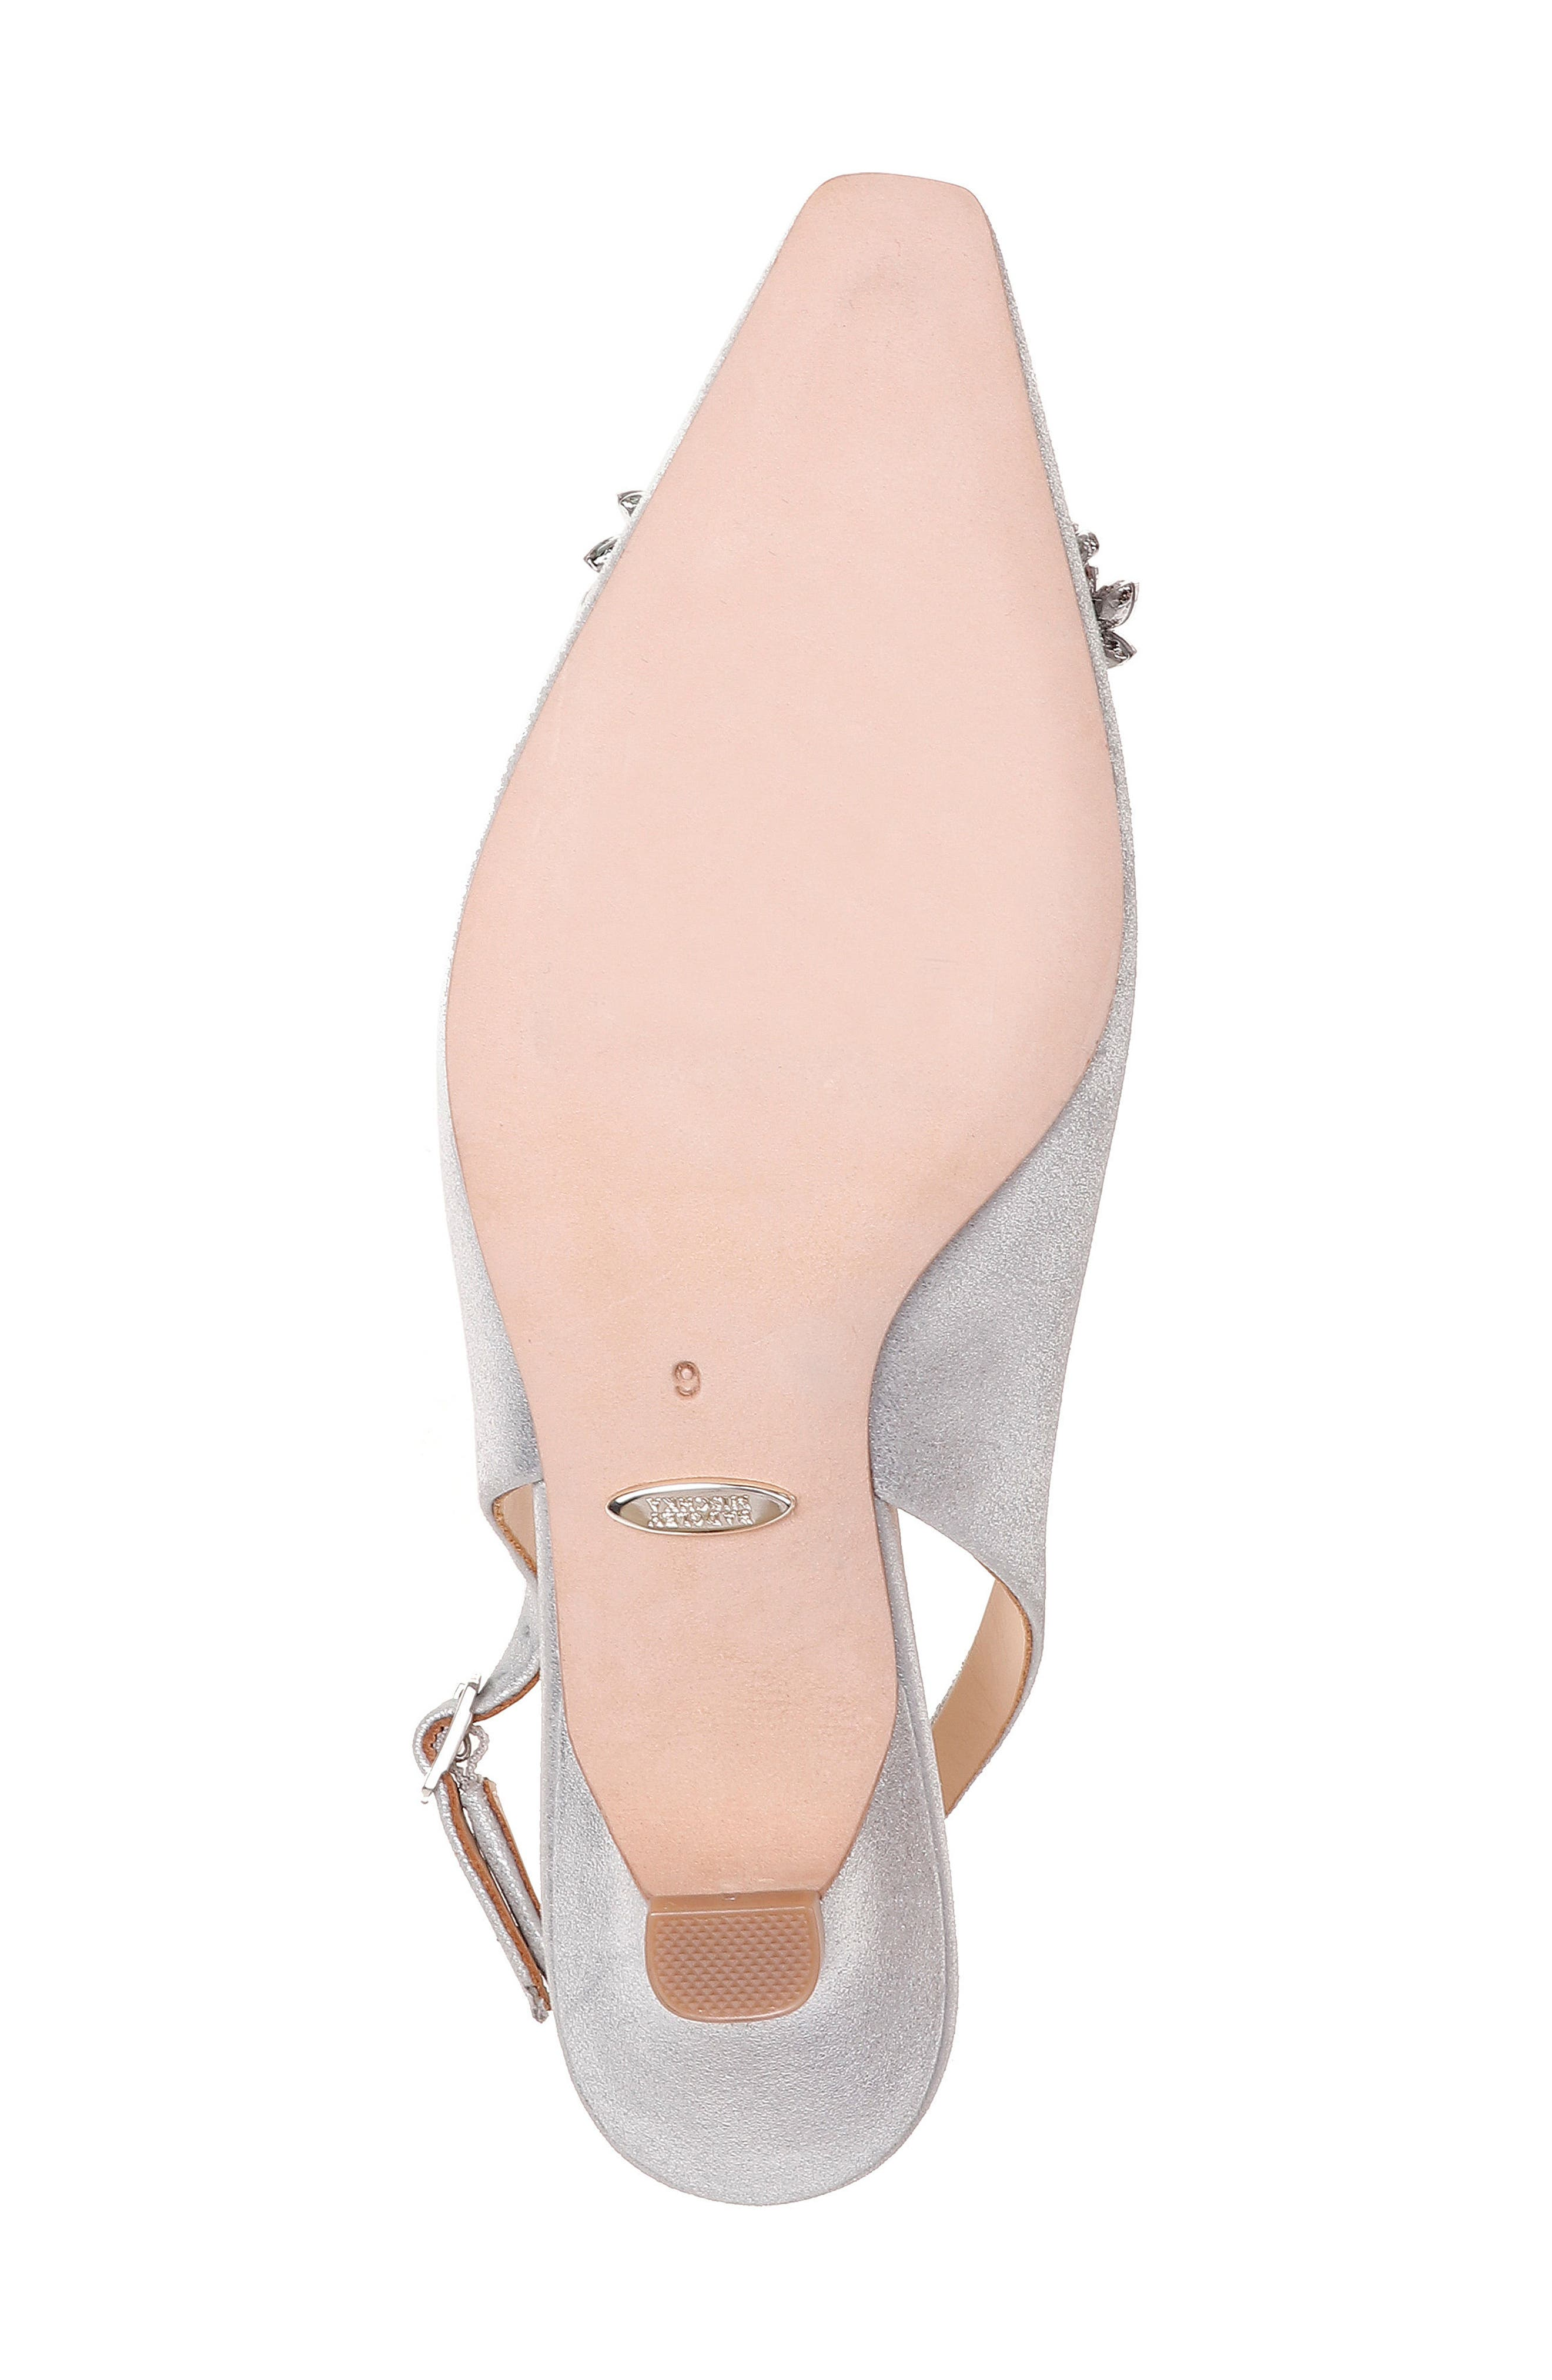 Page Slingback Pump,                             Alternate thumbnail 6, color,                             Silver Metallic Suede